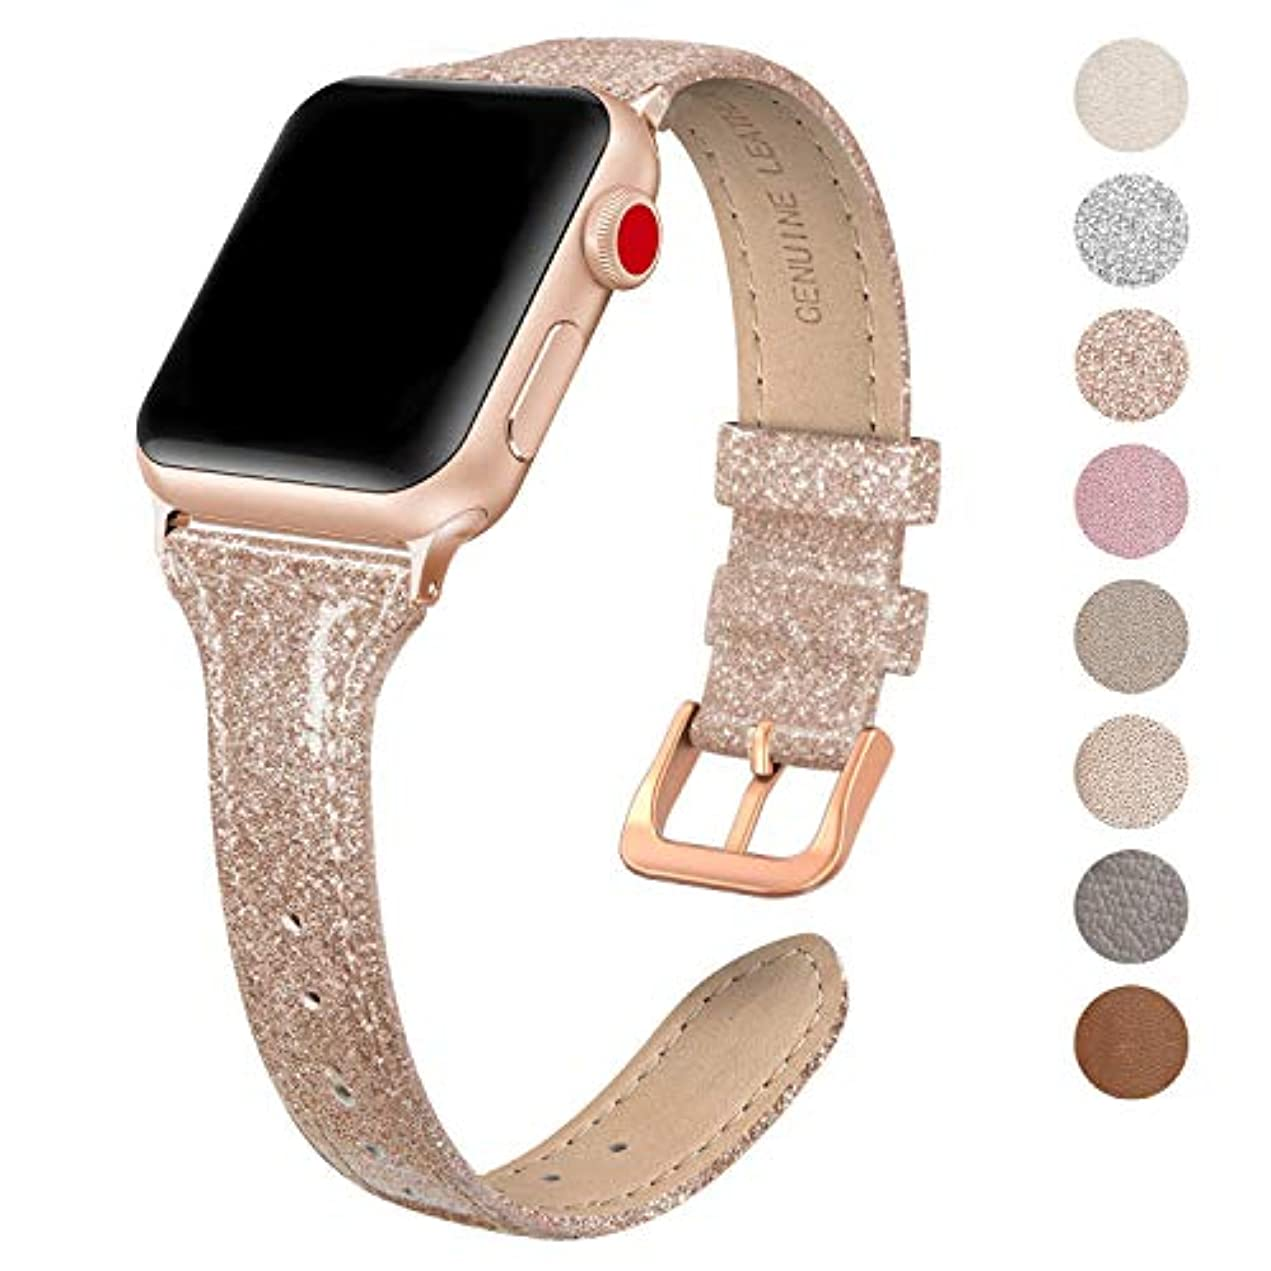 SWEES Leather Band Compatible for Apple Watch iWatch 38mm 40mm, Slim Thin Dressy Genuine Leather Strap Compatible iWatch Series 4 Series 3 Series 2 Series 1 Sport Edition Women, Shiny Rose Gold